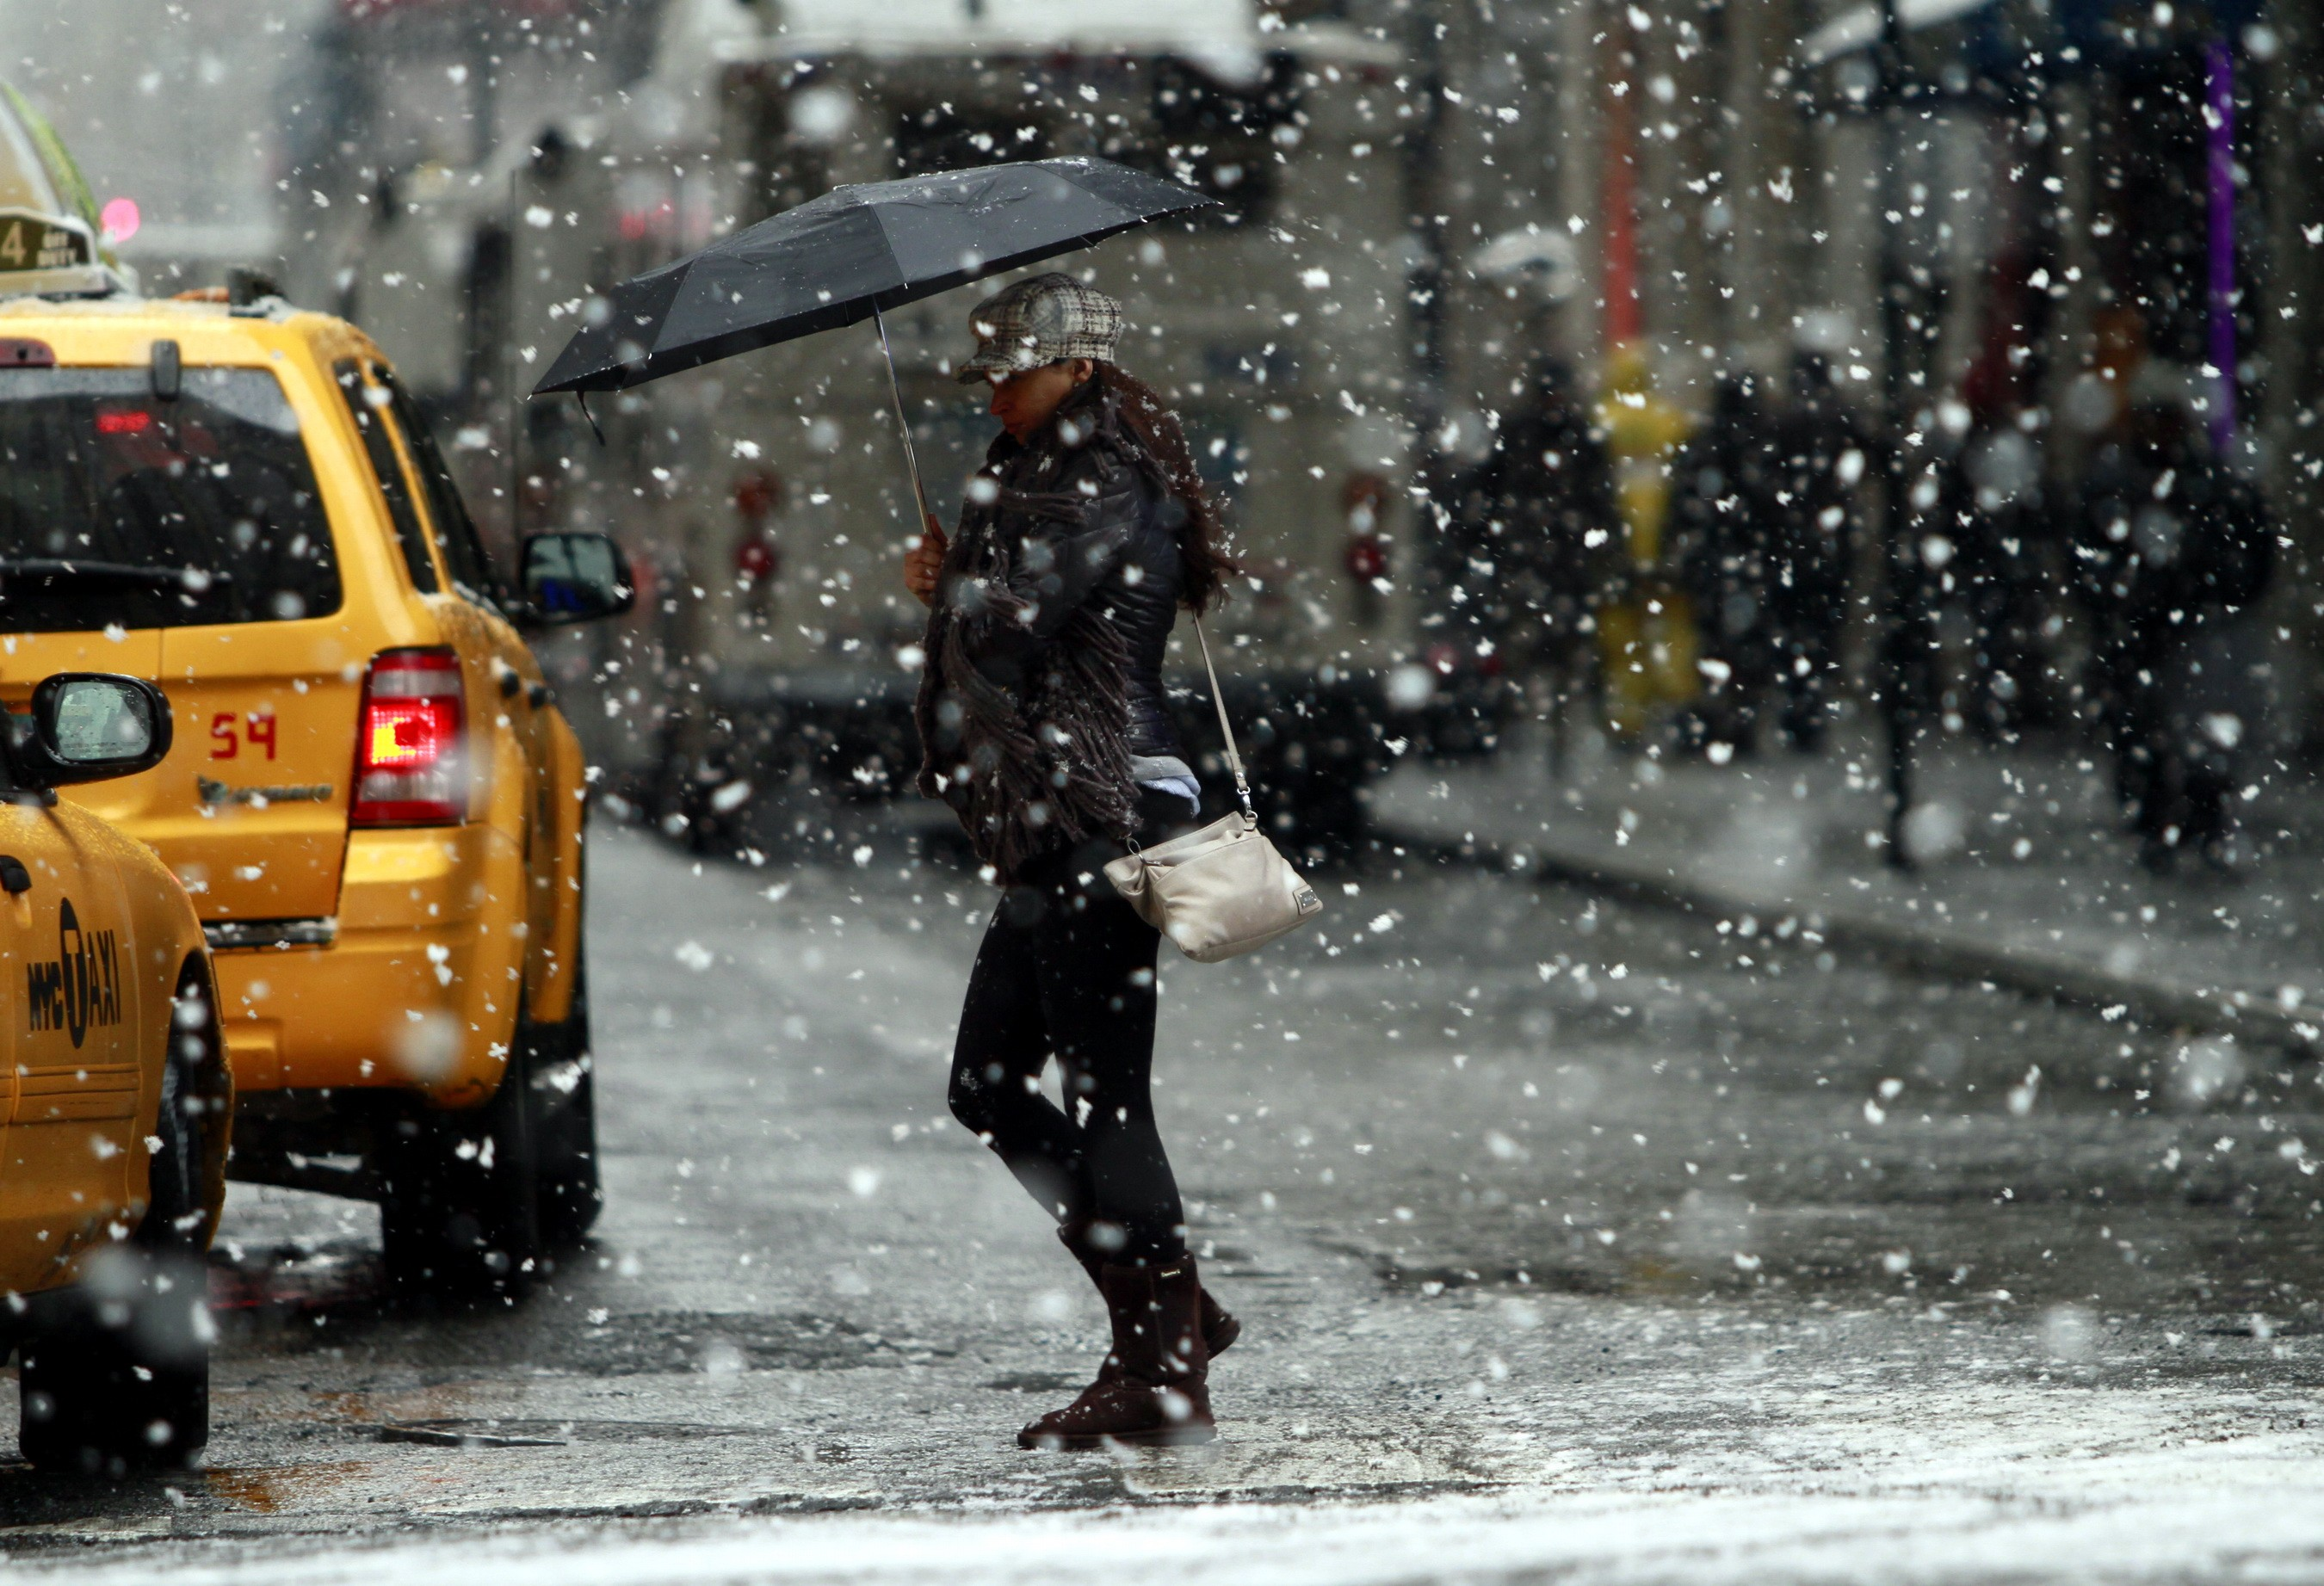 weather_nyc_national_weather_service_weather_forecast_nyc_weather_boston_weather_99832_2700x1843 (1)